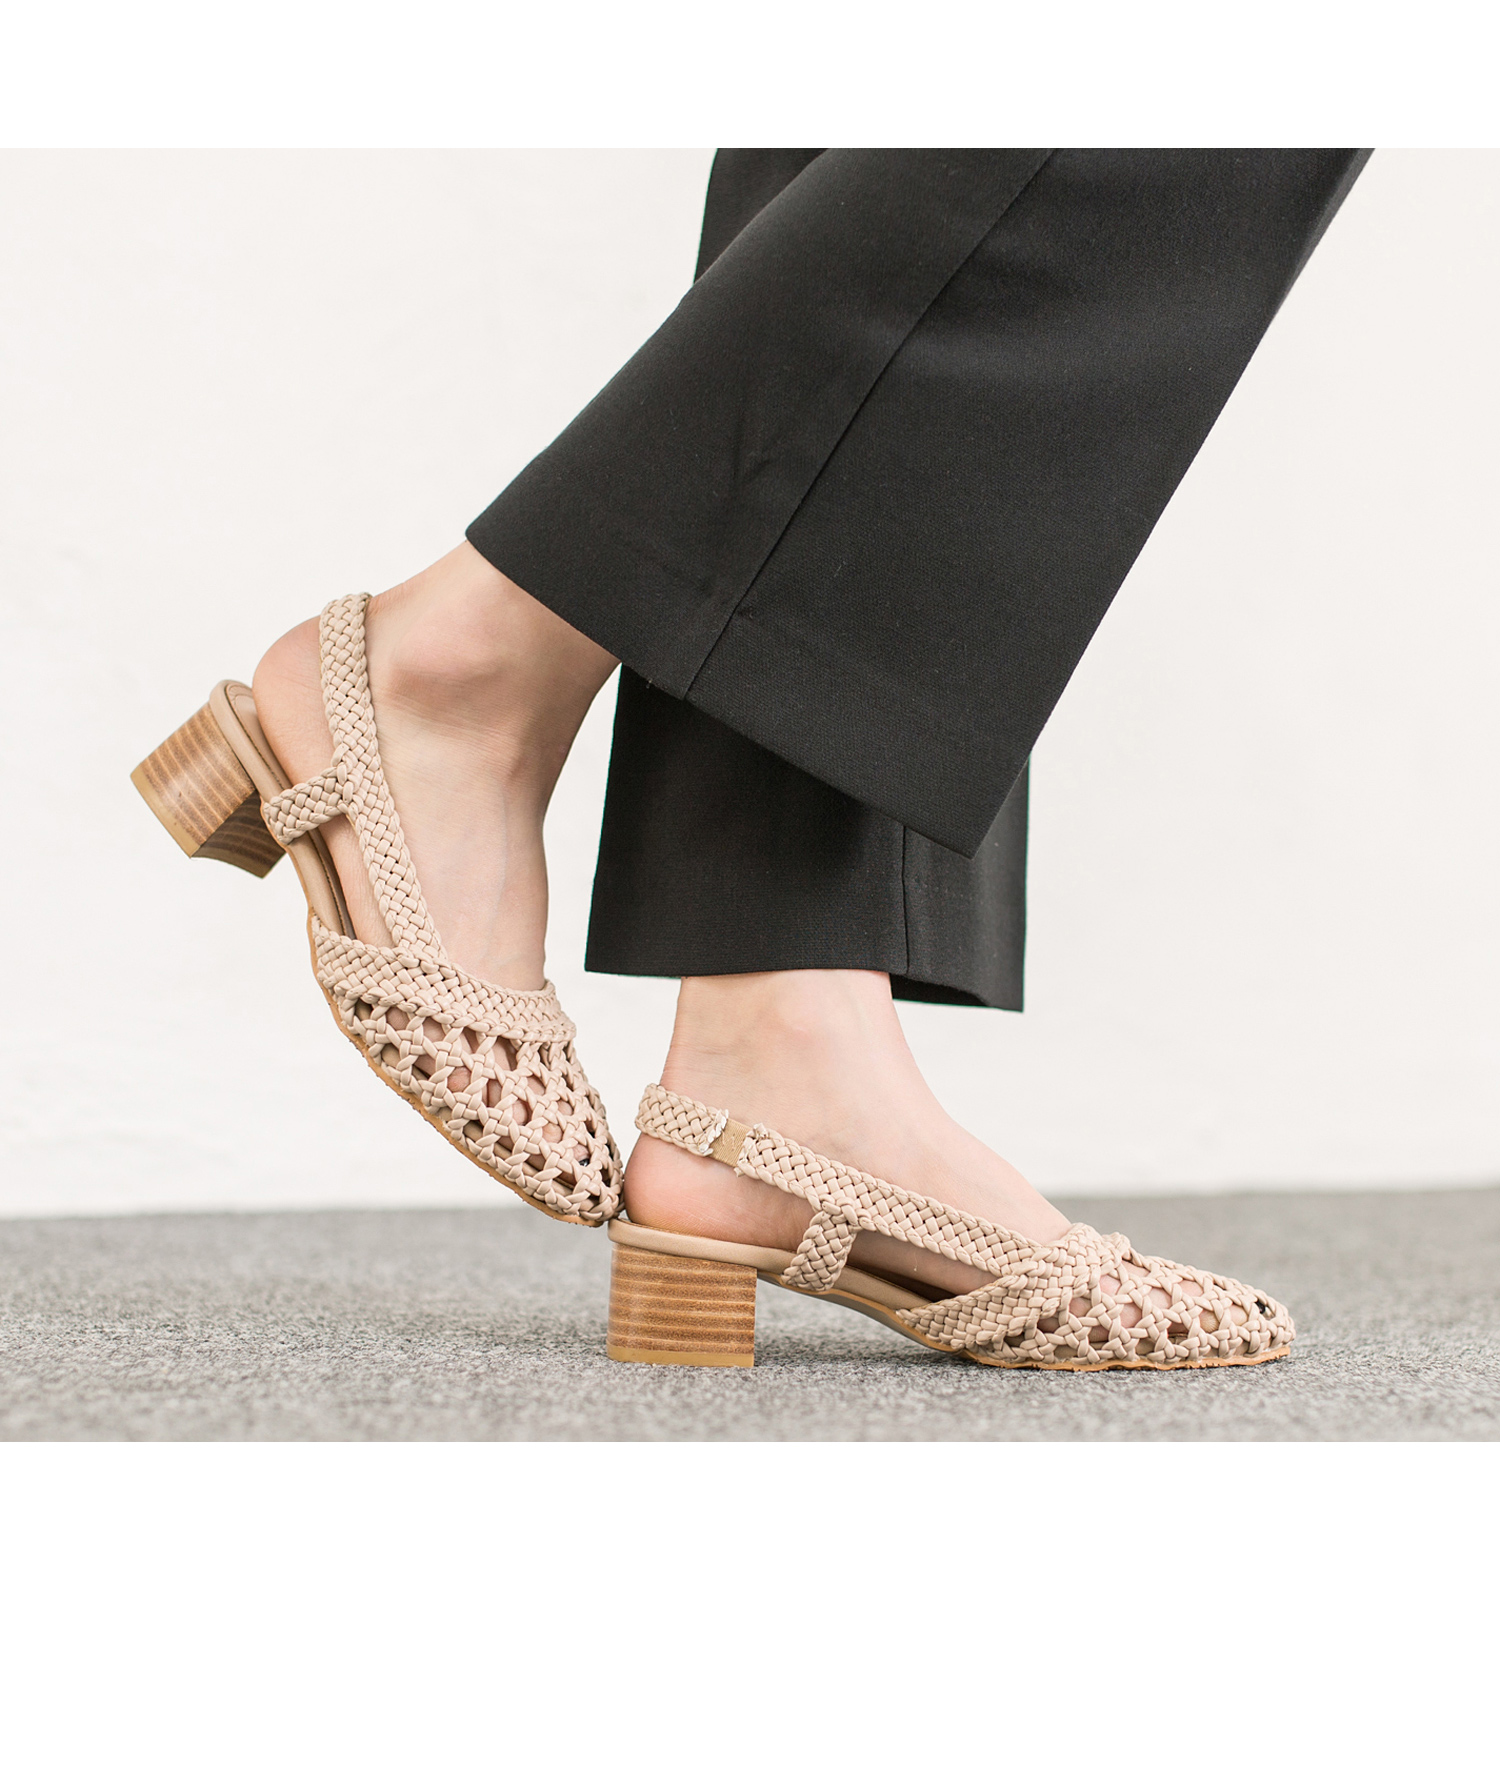 Leather Braided Woven Slingback Sandals Annakastleshoes Com